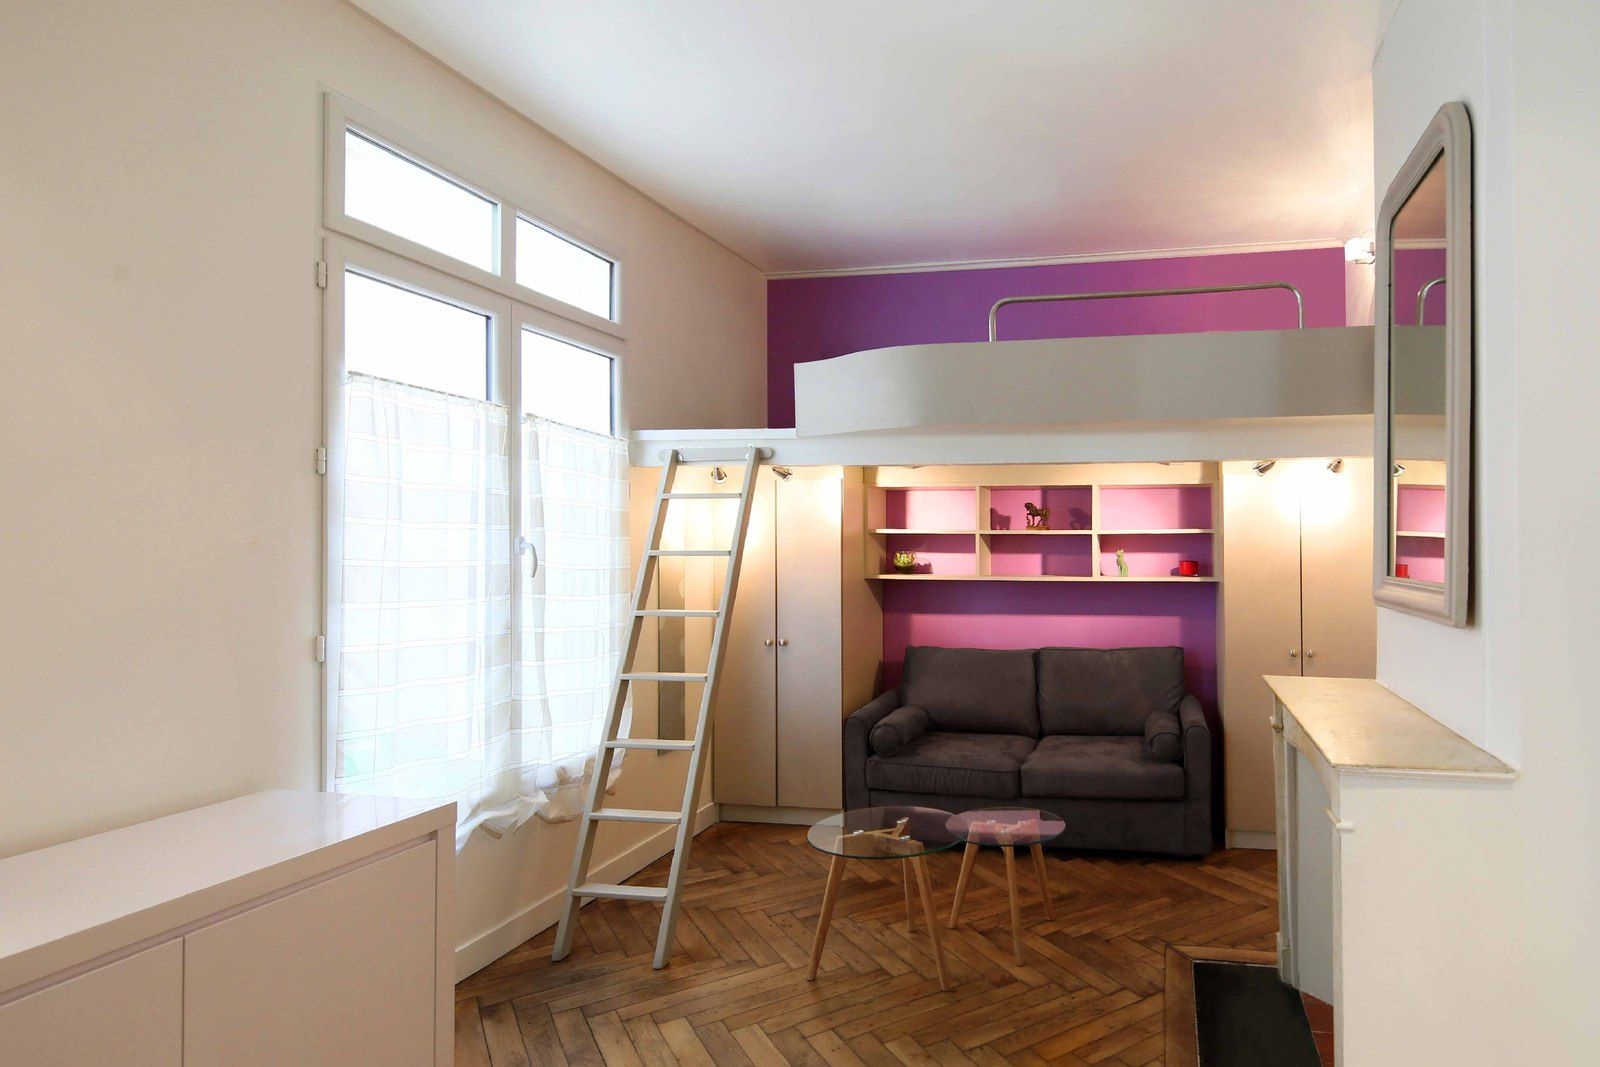 Un studio de 20 m2 avec mezzanine le blog d 39 une for Une are en m2